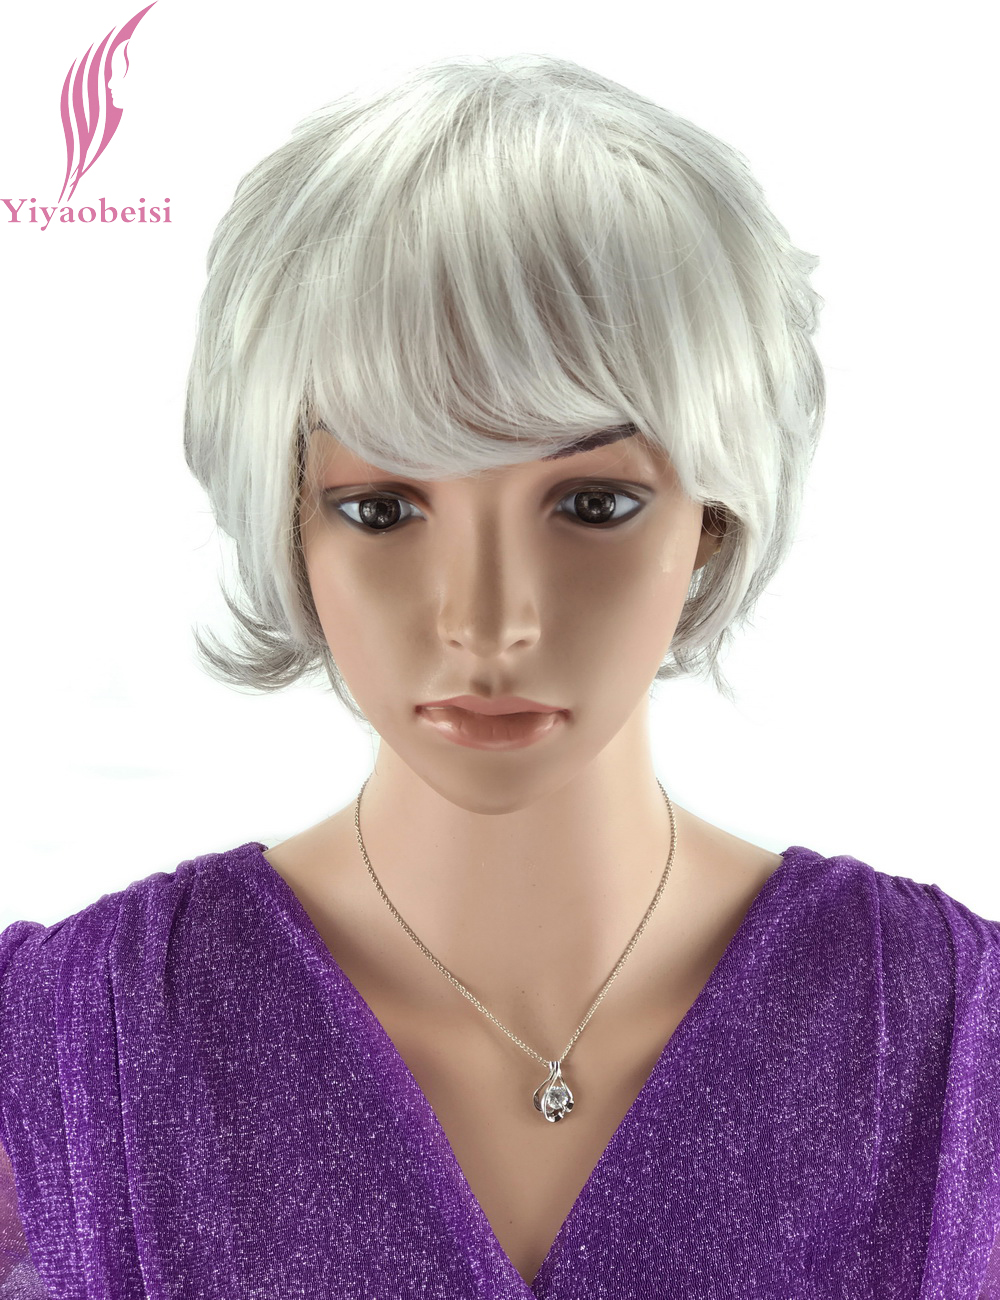 Groovy Popular Grey Old Hair Buy Cheap Grey Old Hair Lots From China Grey Short Hairstyles Gunalazisus